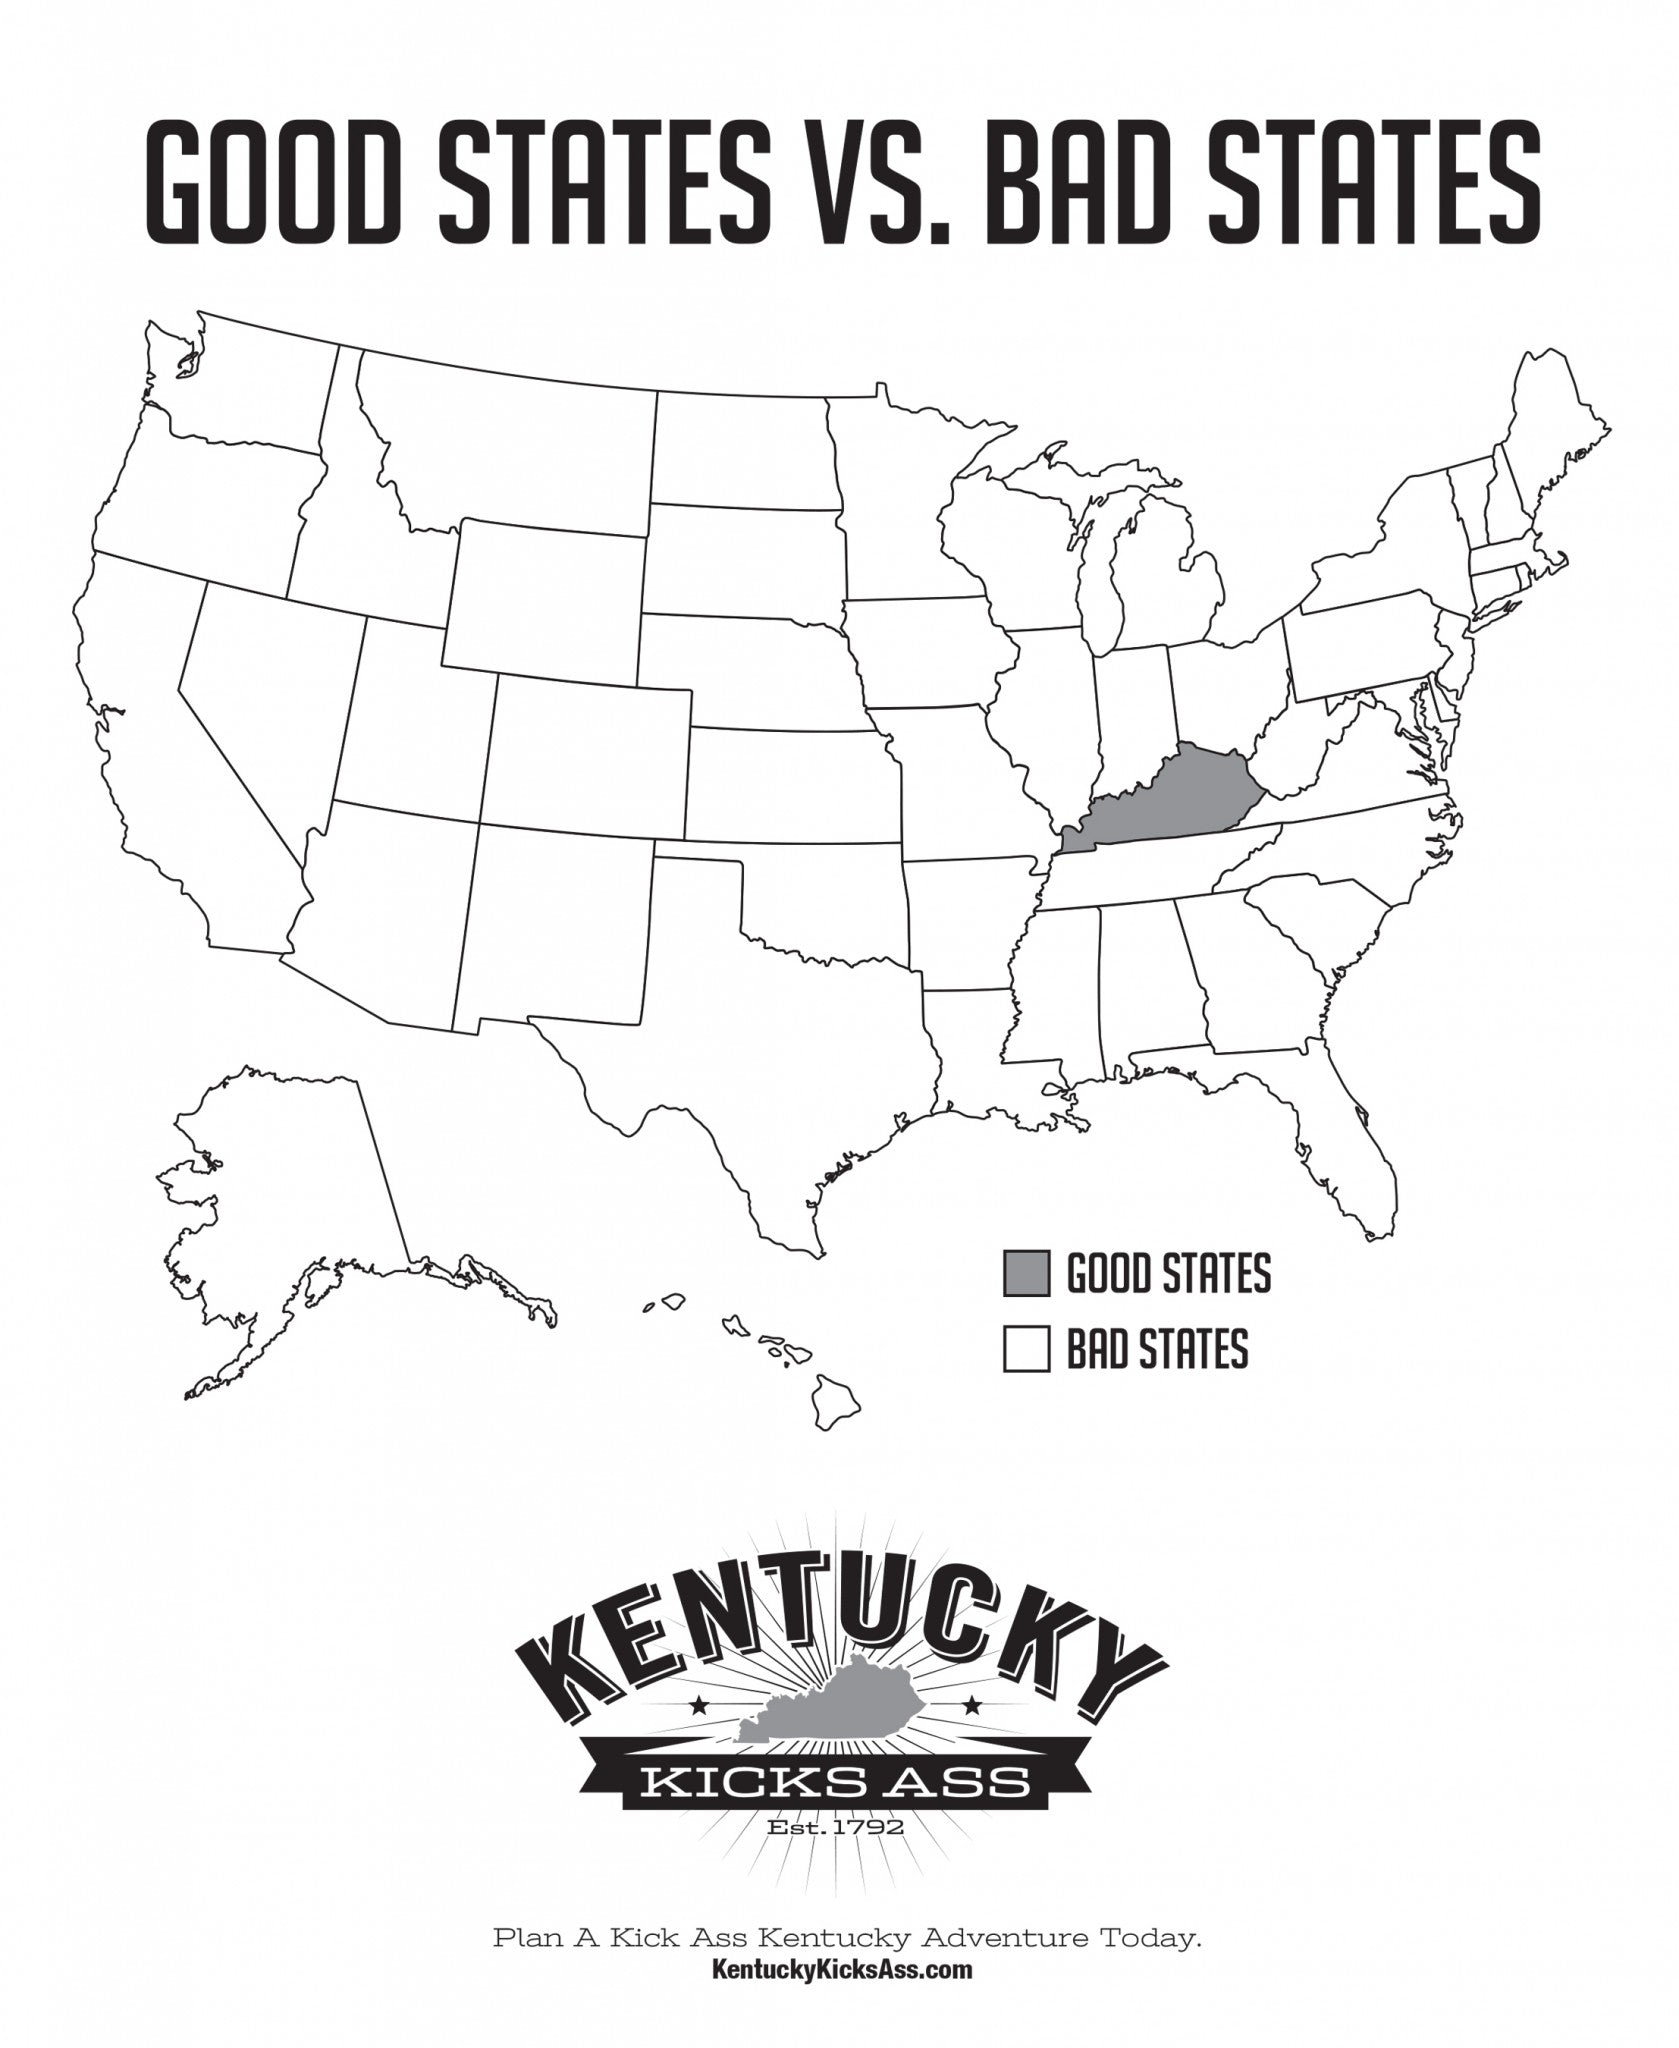 GOOD STATES VS. BAD STATES